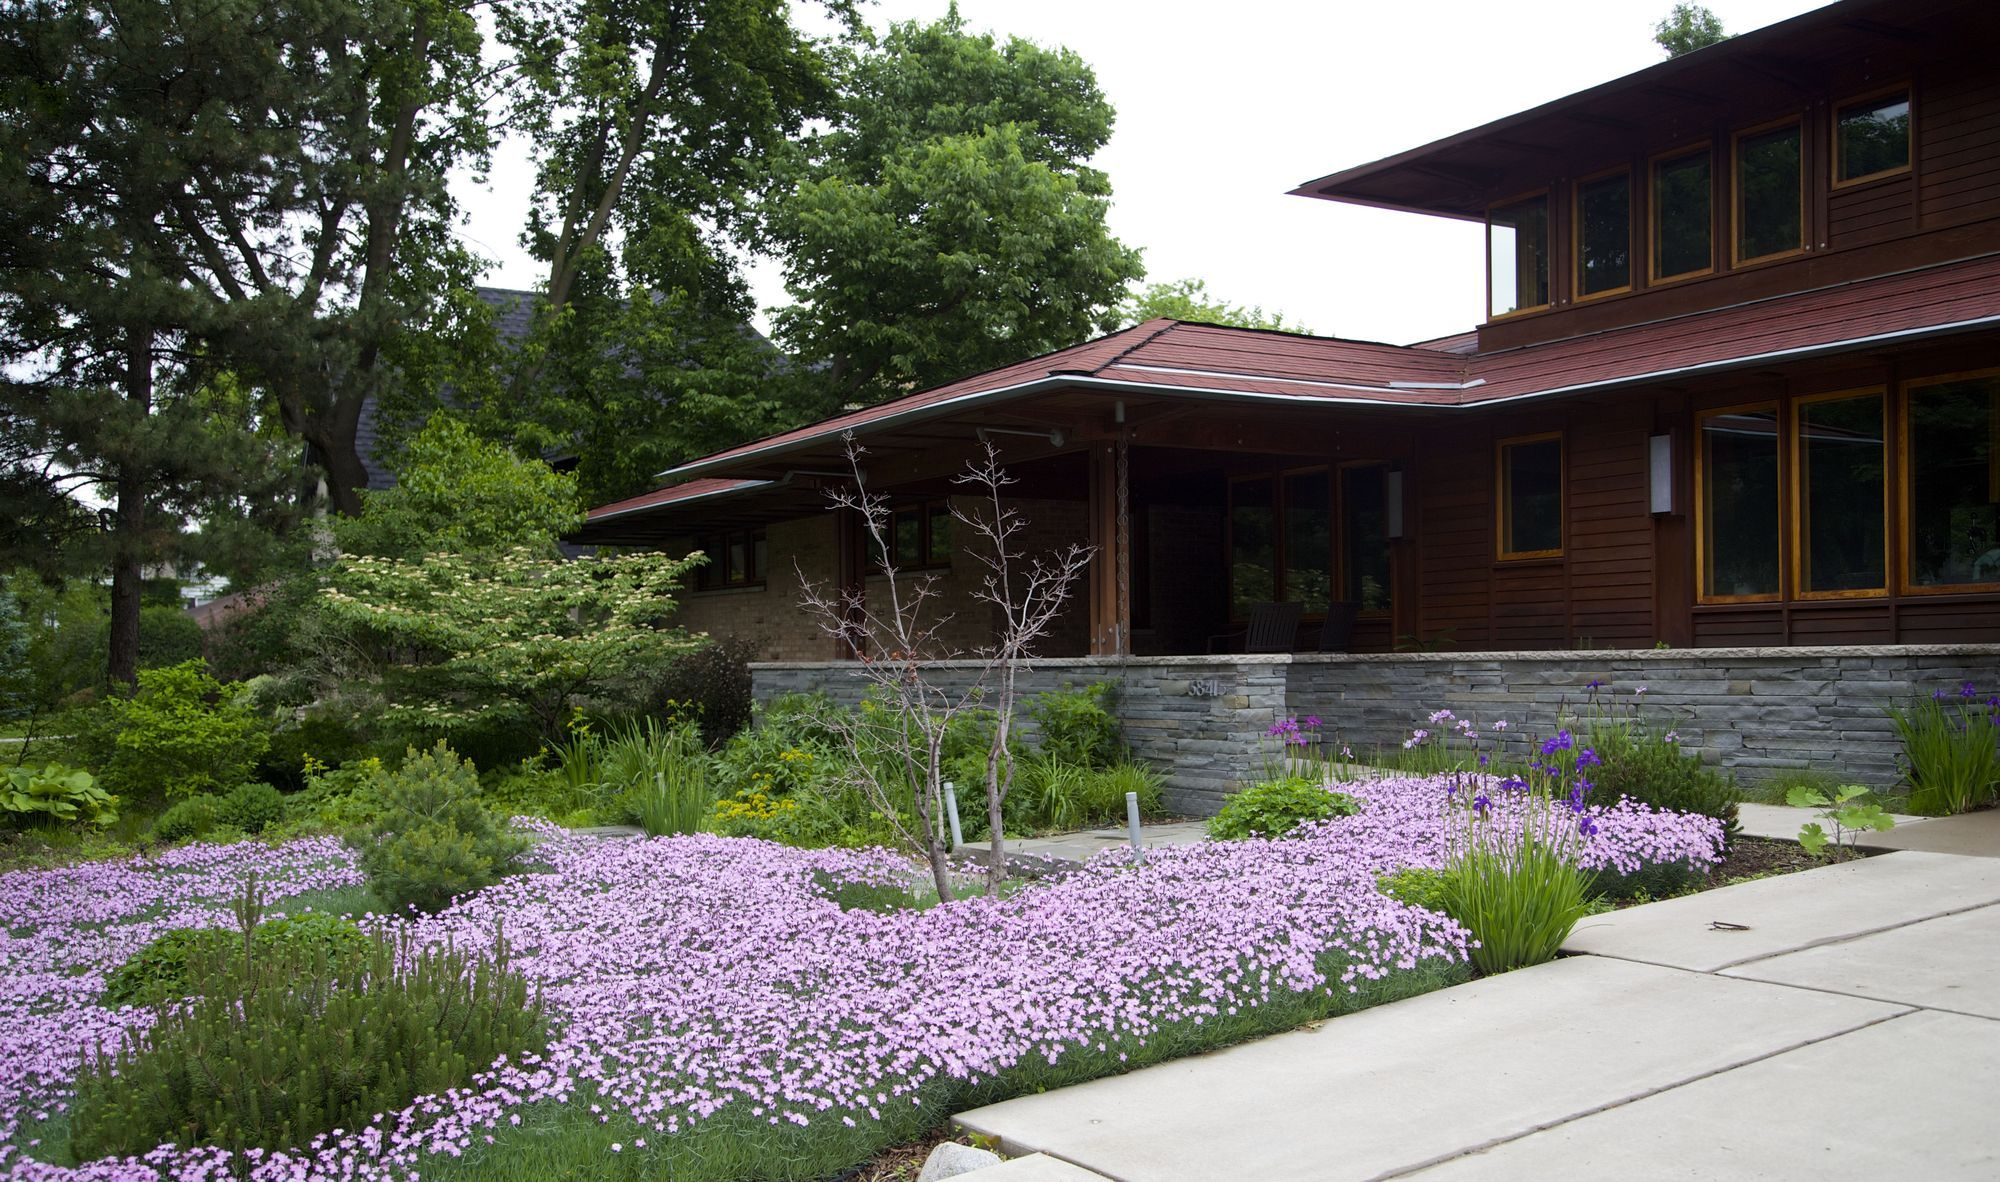 Genial If Youu0027re Done With Turf, Lawn Alternatives Include Dianthus.